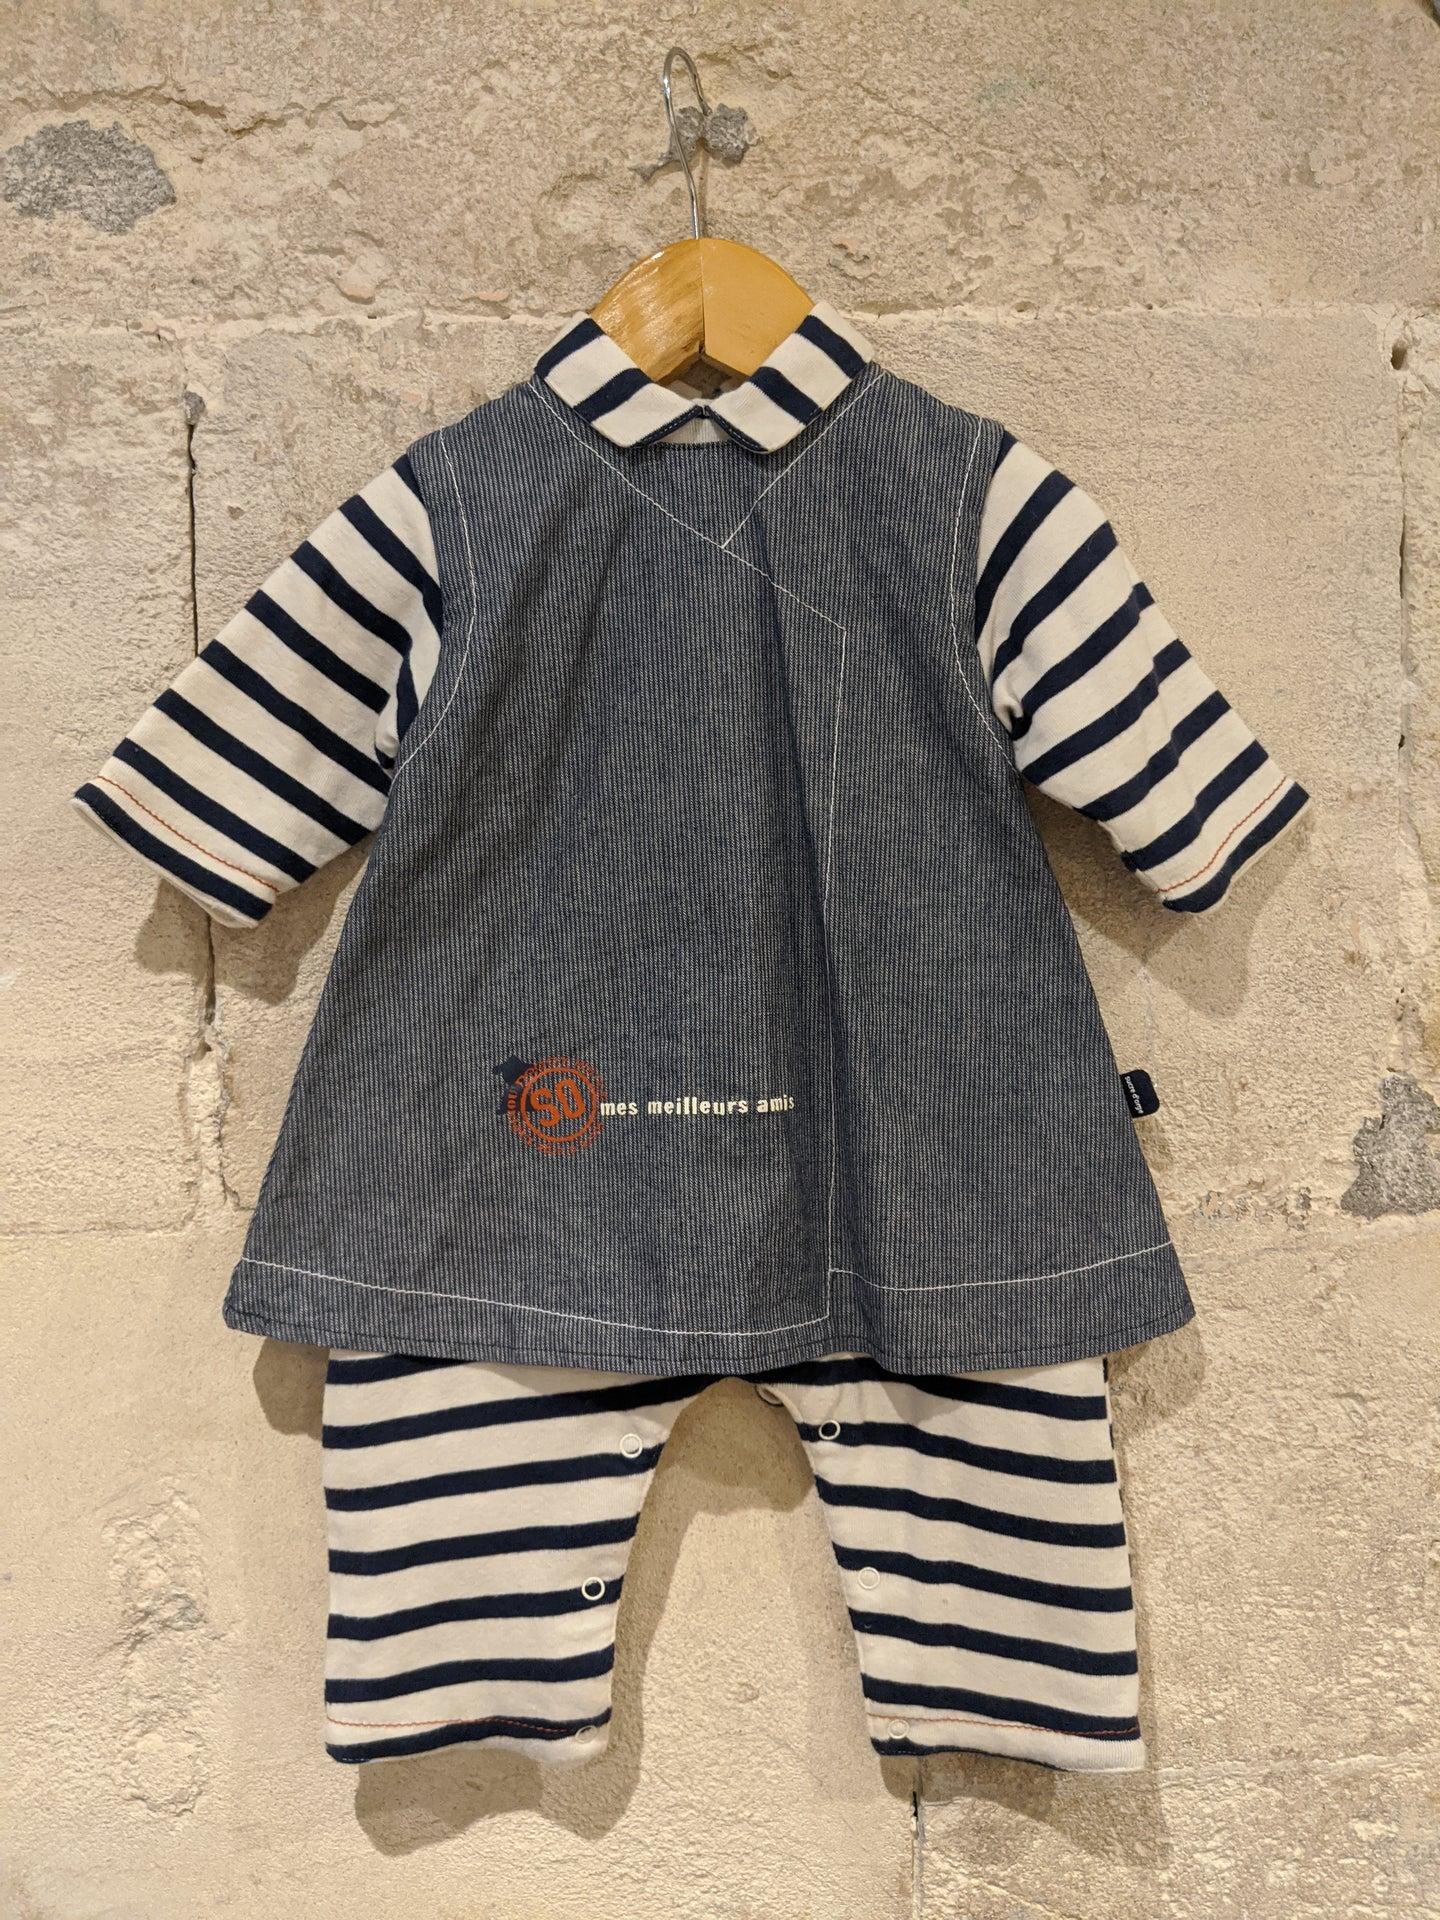 Fabulous Snuggly Breton Striped Romper-Dress in One - 6 Months